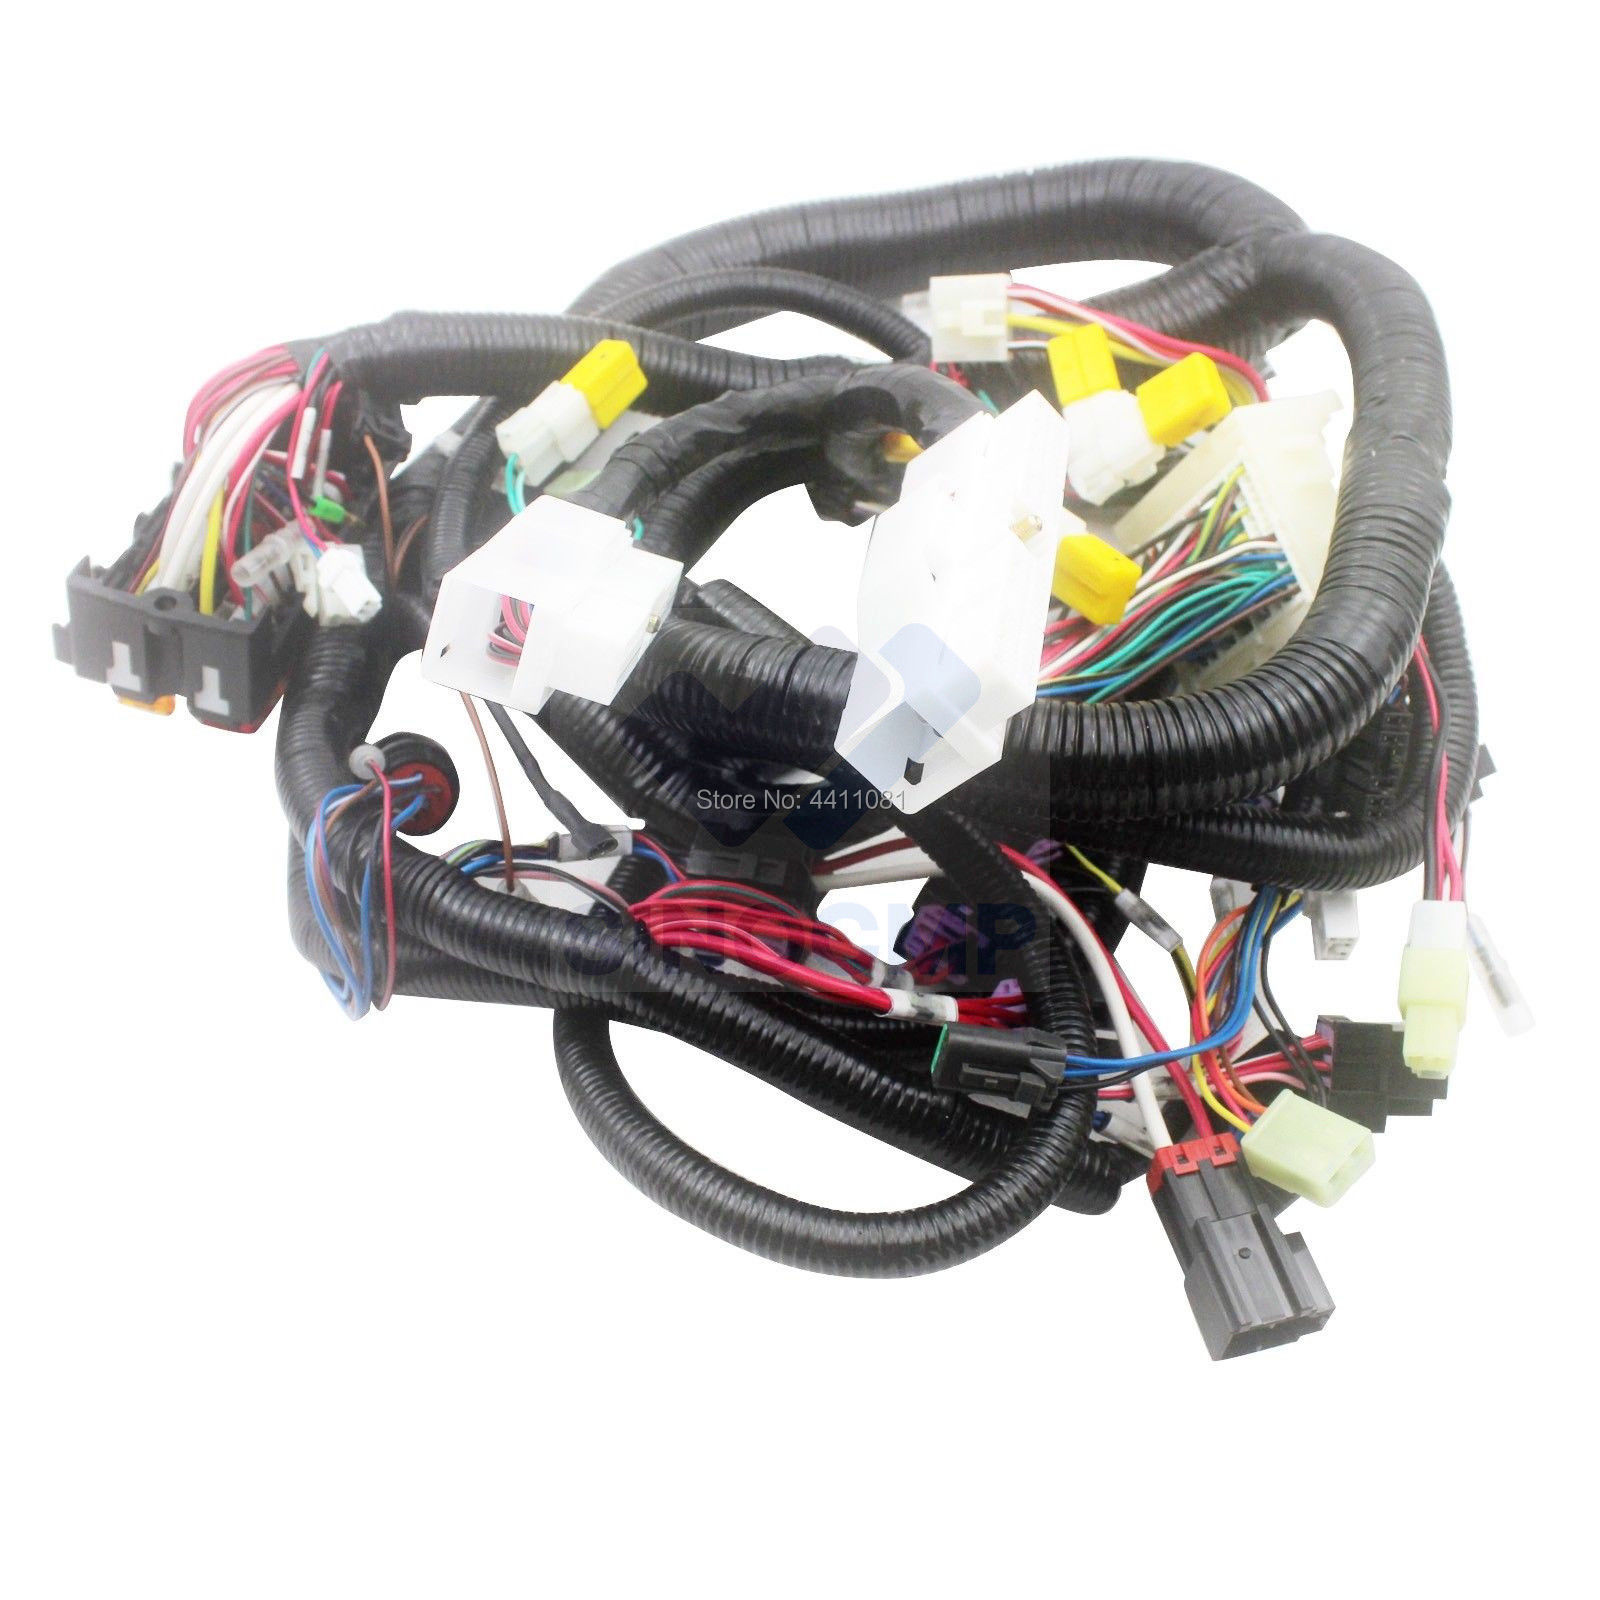 EX100-2 Inner Wiring Harness 0001044 for Hitachi Excavator Wire Cable, 3 month warrantyEX100-2 Inner Wiring Harness 0001044 for Hitachi Excavator Wire Cable, 3 month warranty